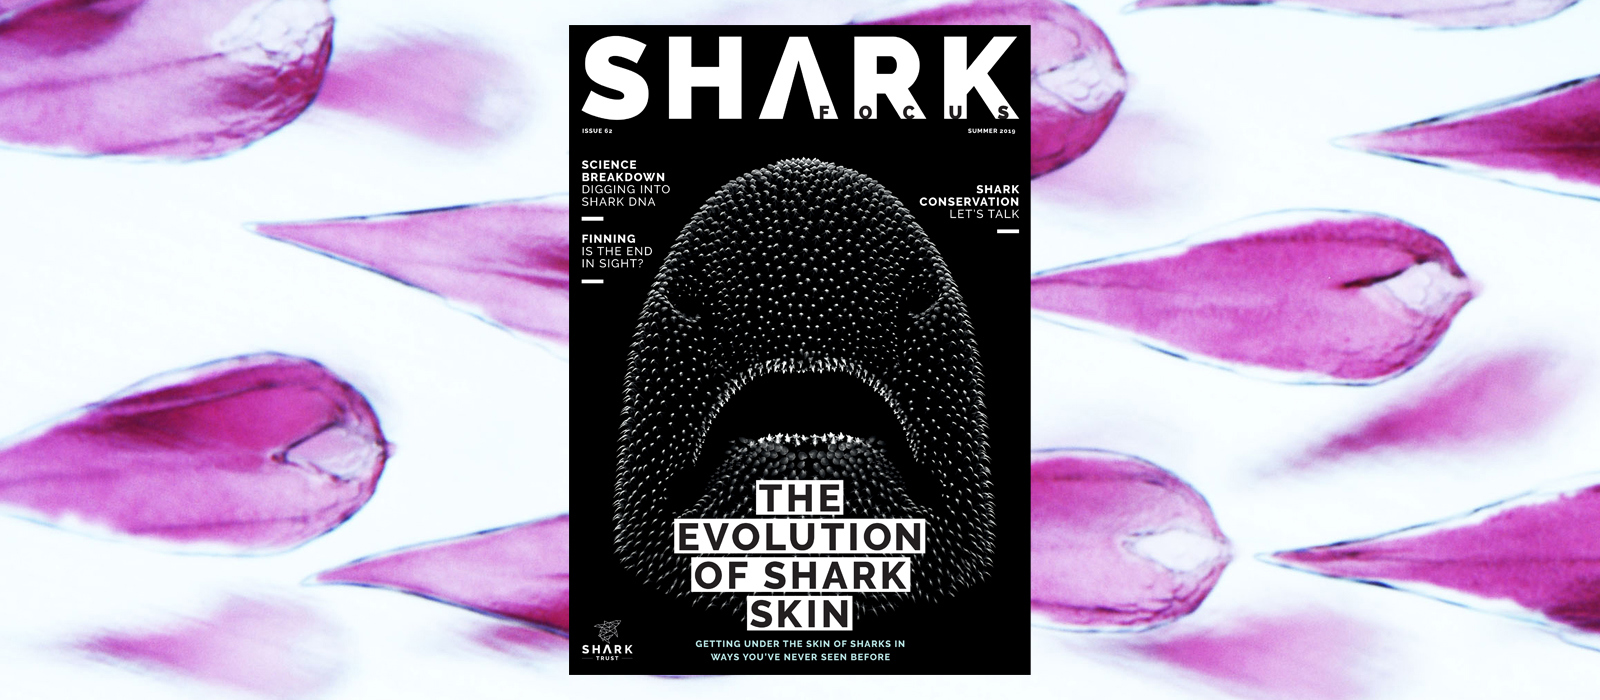 Shark Focus Magazine (Issue 62) – Out Now!